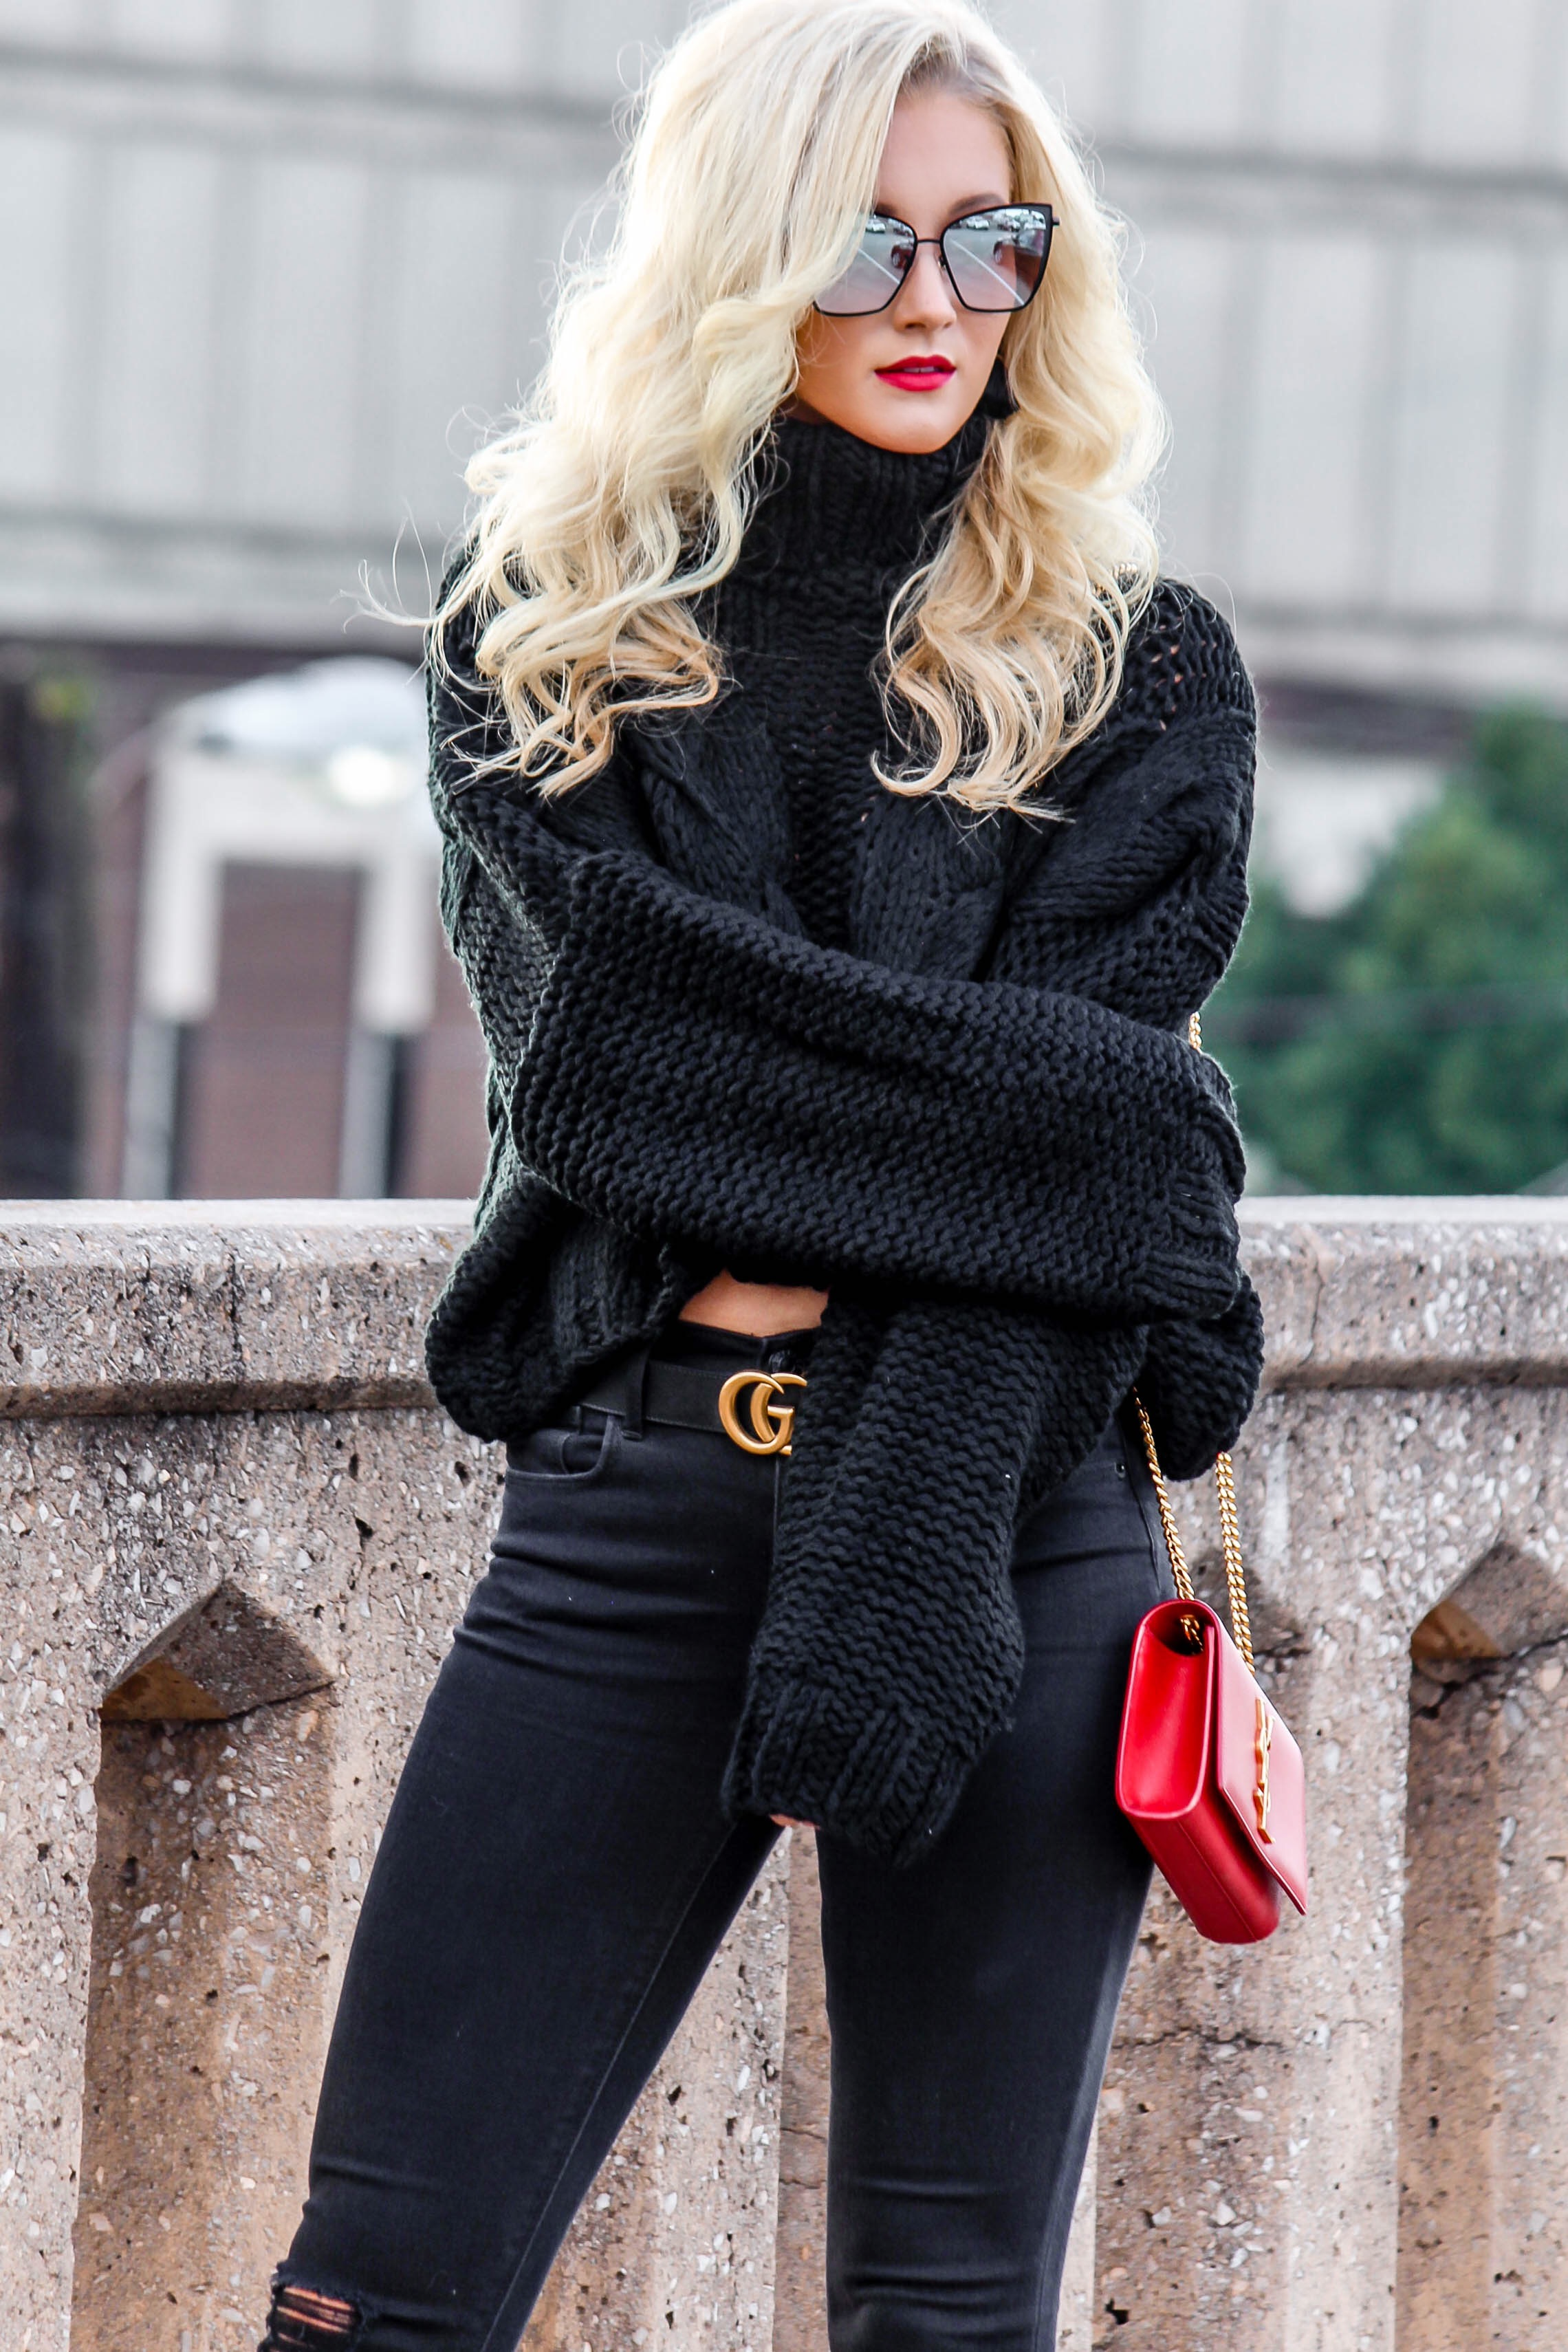 Cable Knit Sweaters for Fall | love 'n' labels www.lovenlabels.com